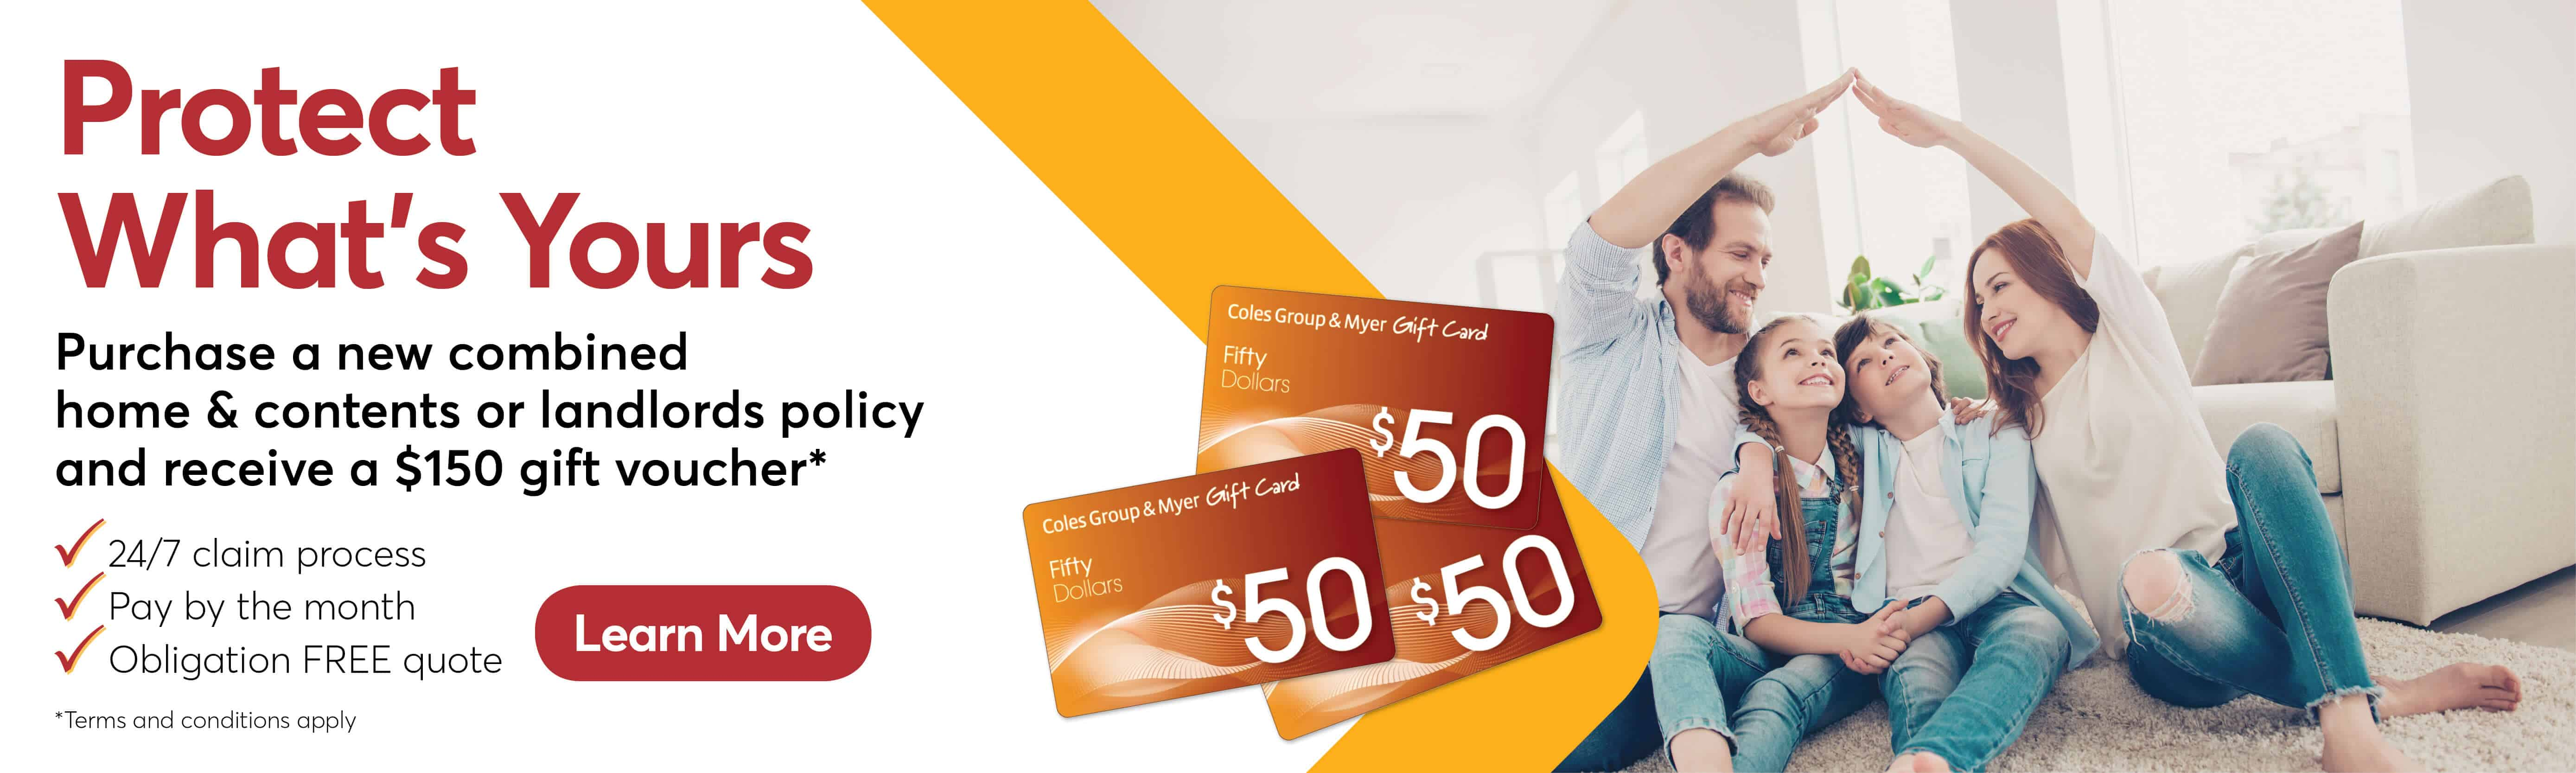 Insurance Gift Card Promotion